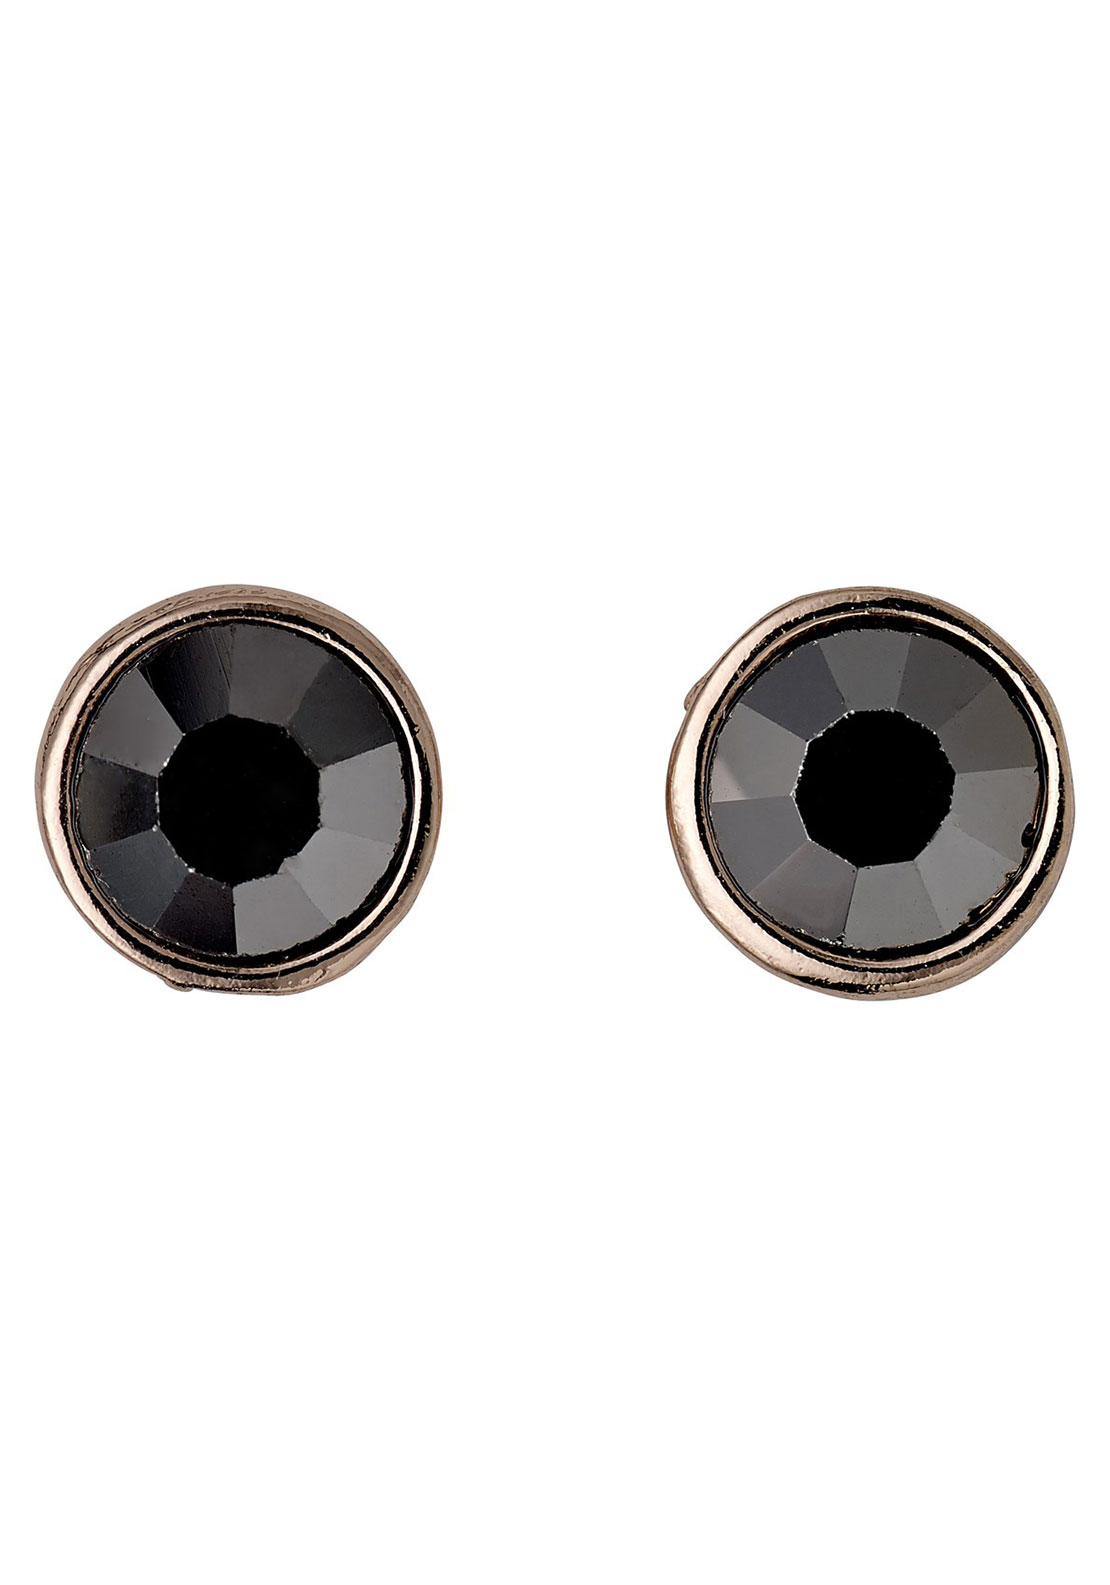 Pilgrim Grey Hematite Stud Earrings, Rose Gold